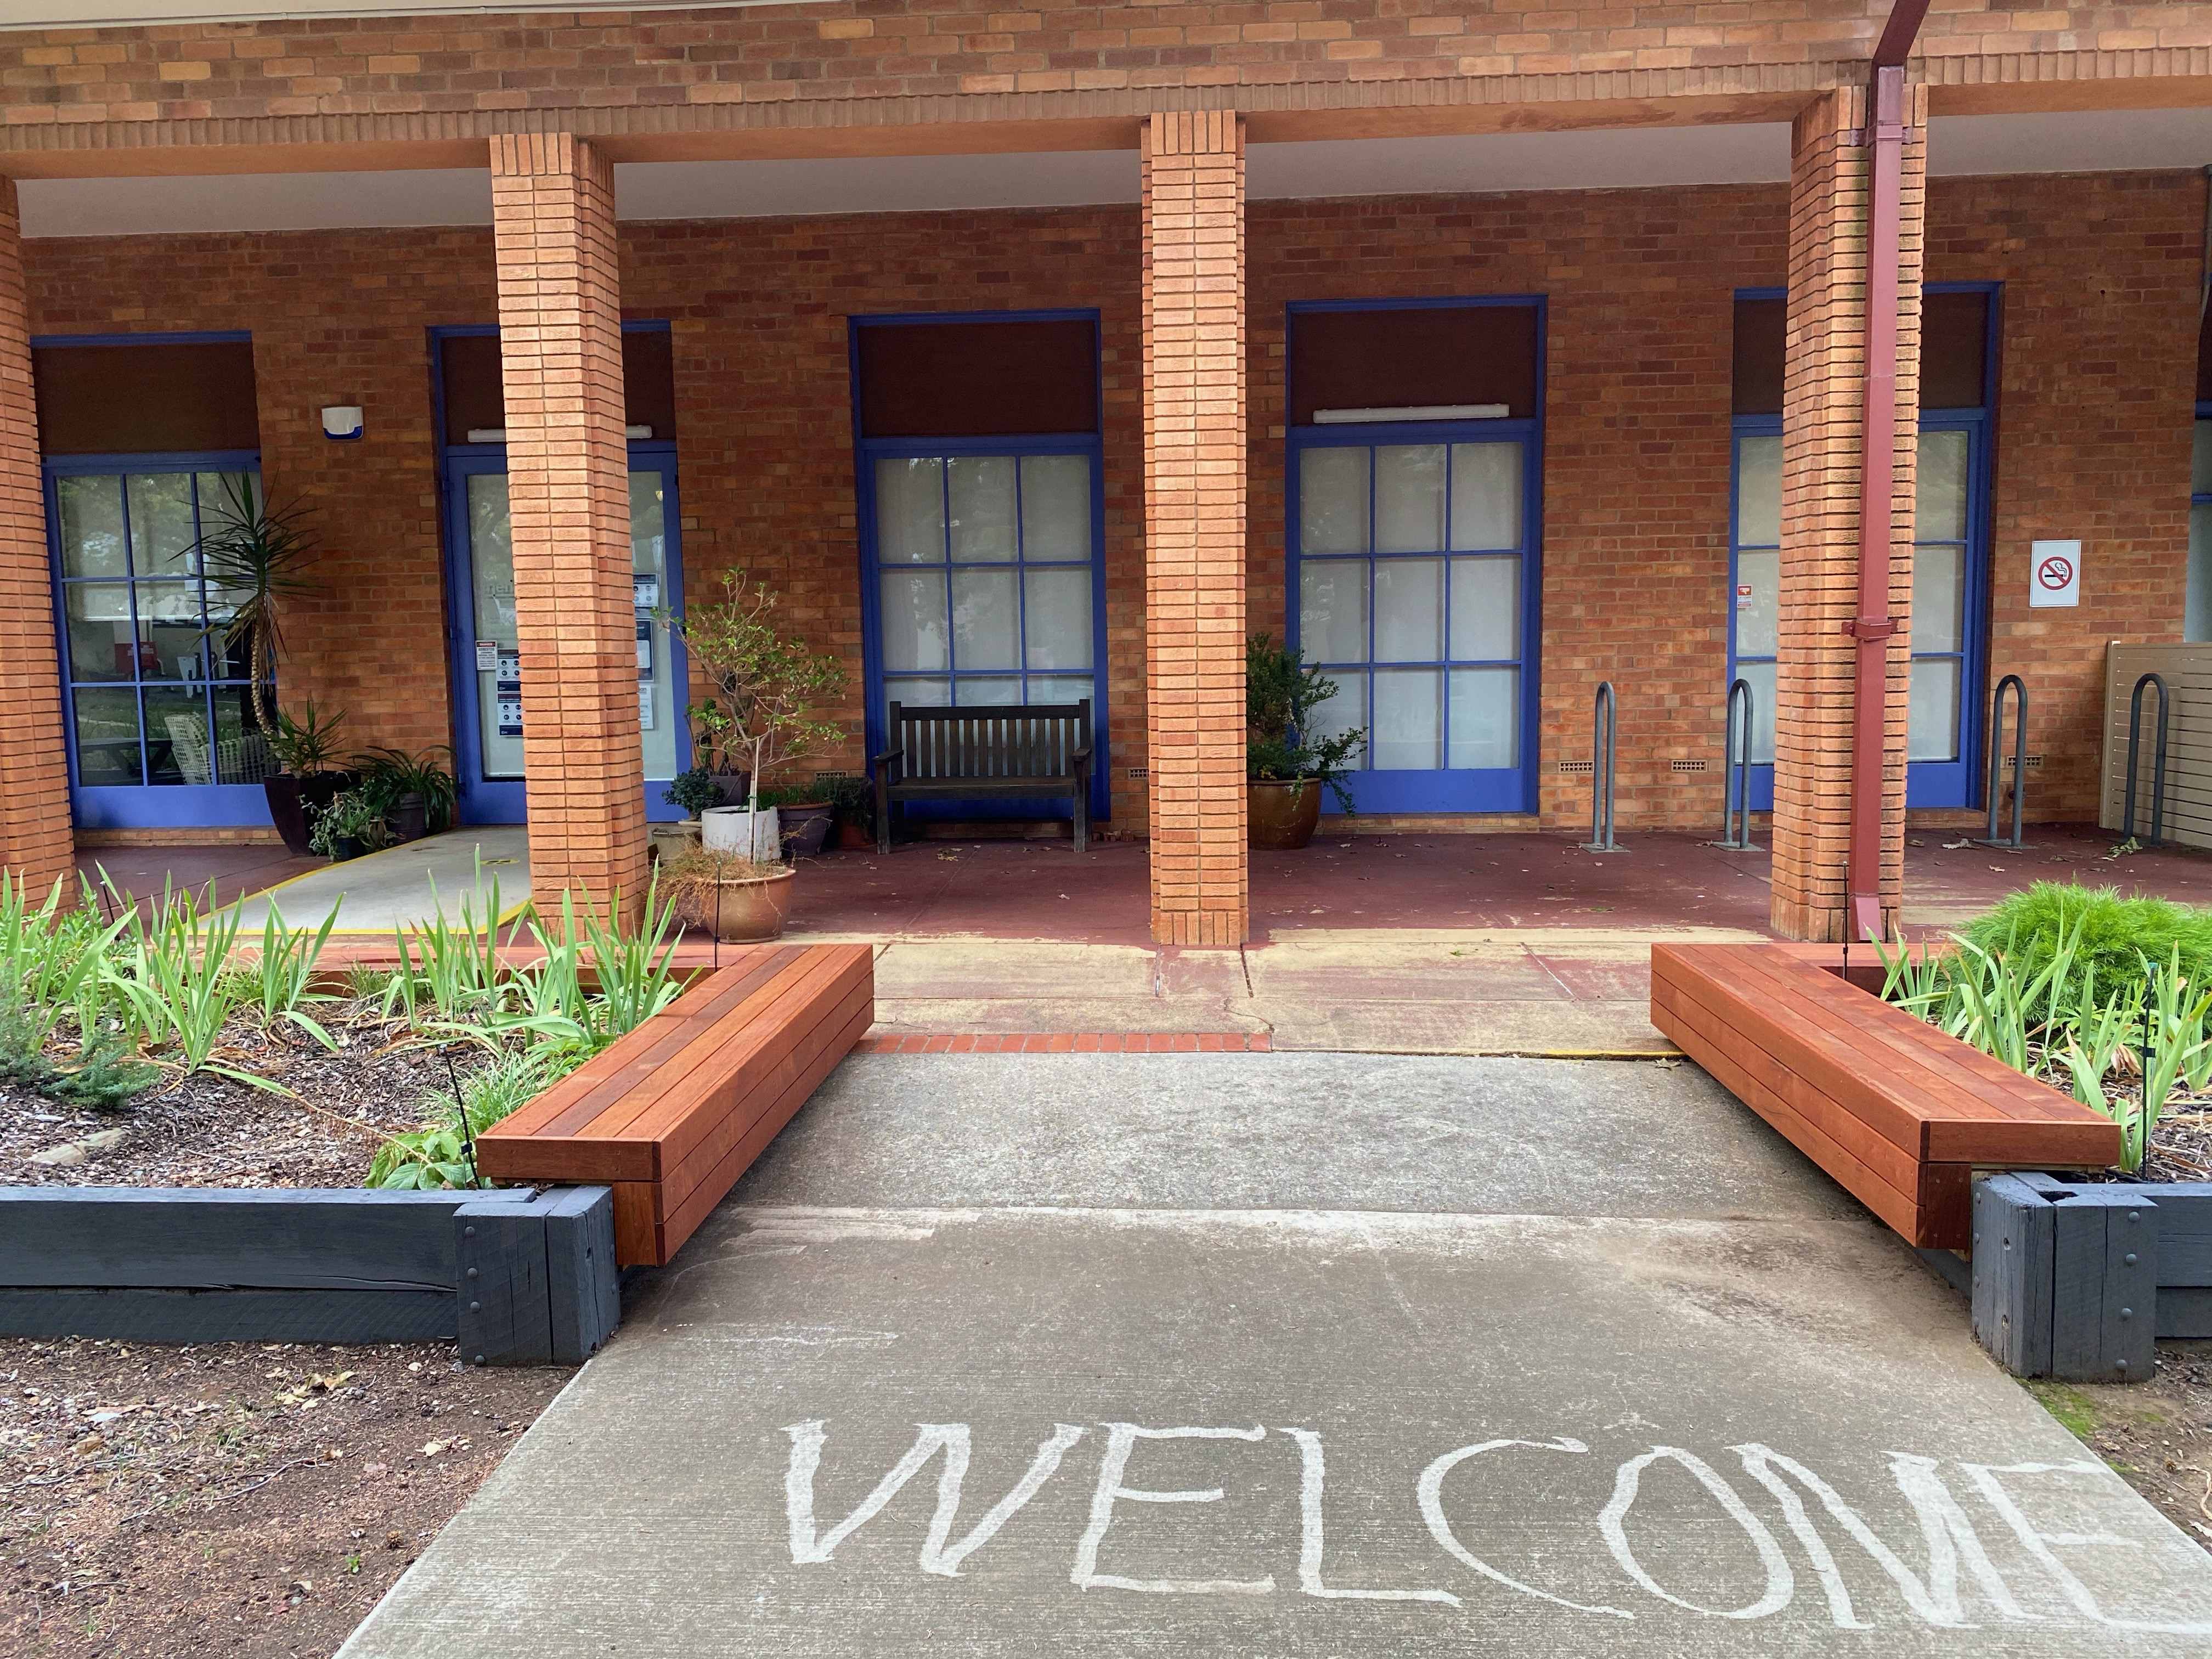 """Front entrant to Meridian building with """"Welcome"""" painted on the concrete footpath"""